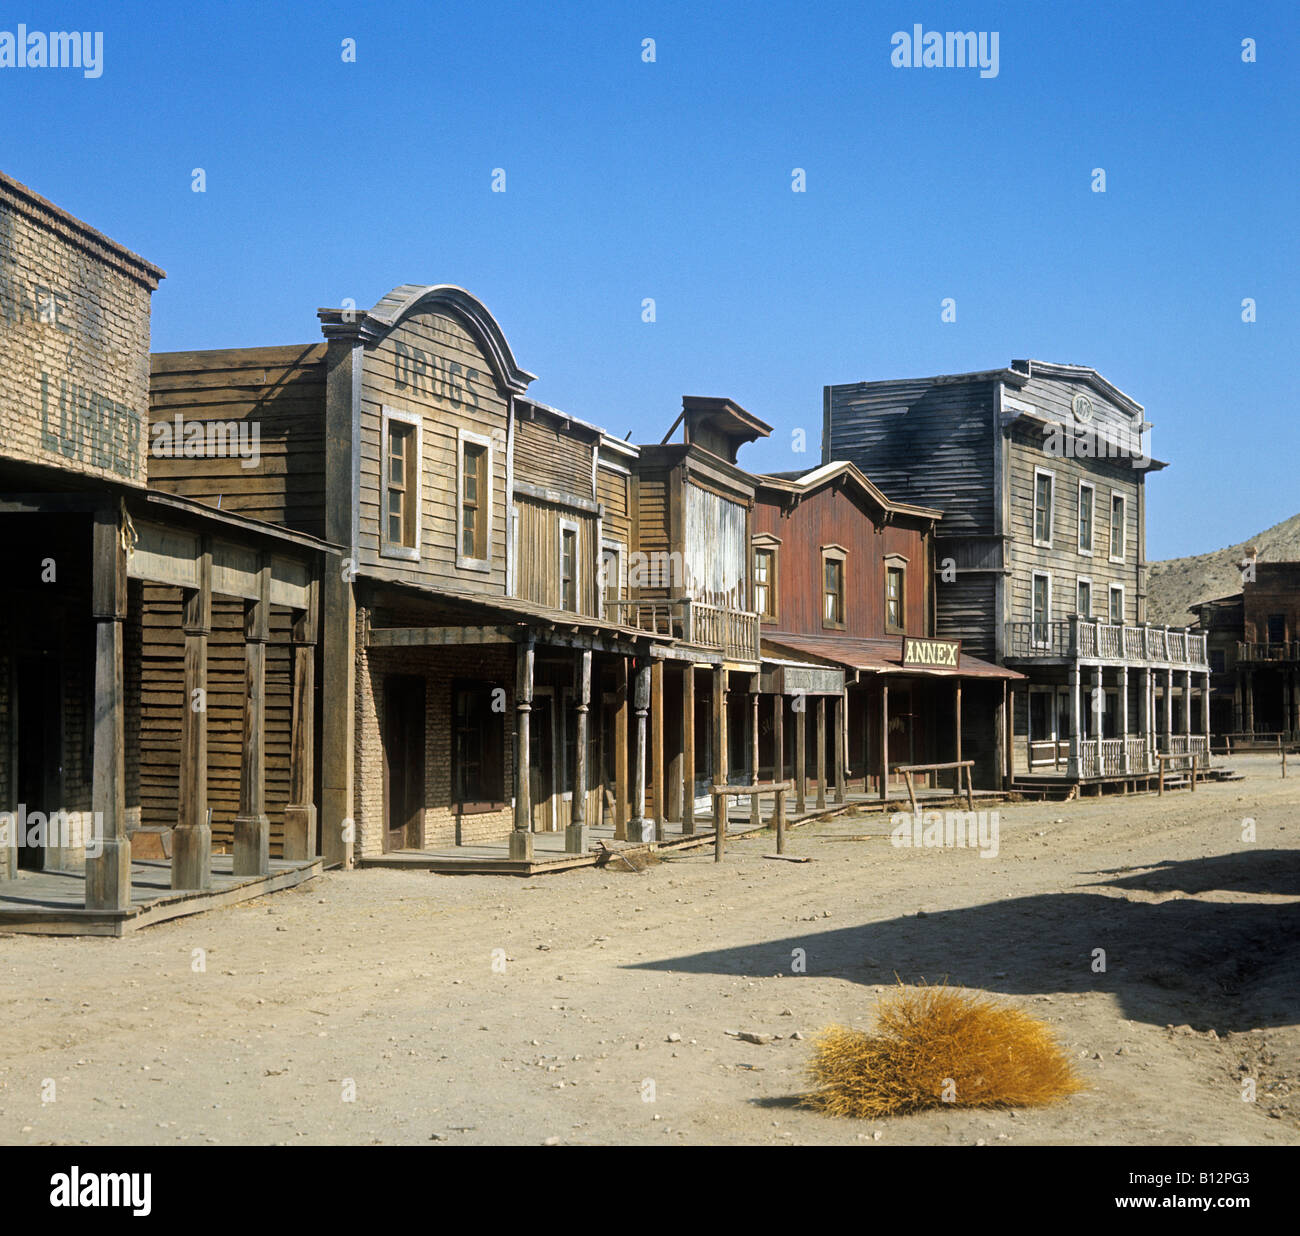 wild west town built as a film set for some of the early